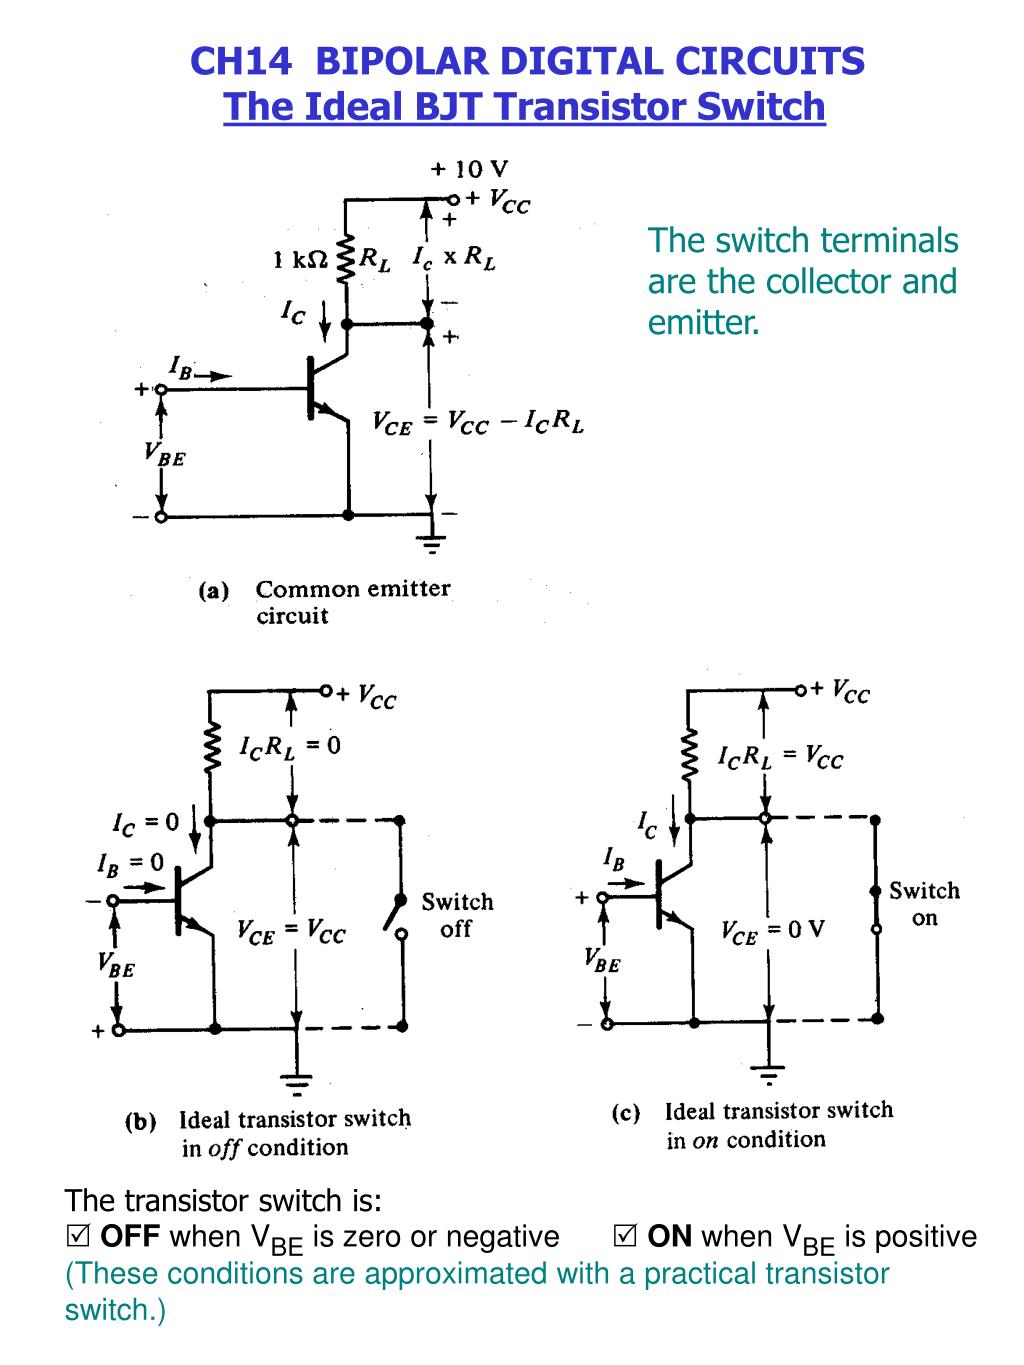 Ppt The Switch Terminals Are Collector And Emitter Powerpoint Common Transistor Circuit Presentation Id3291204